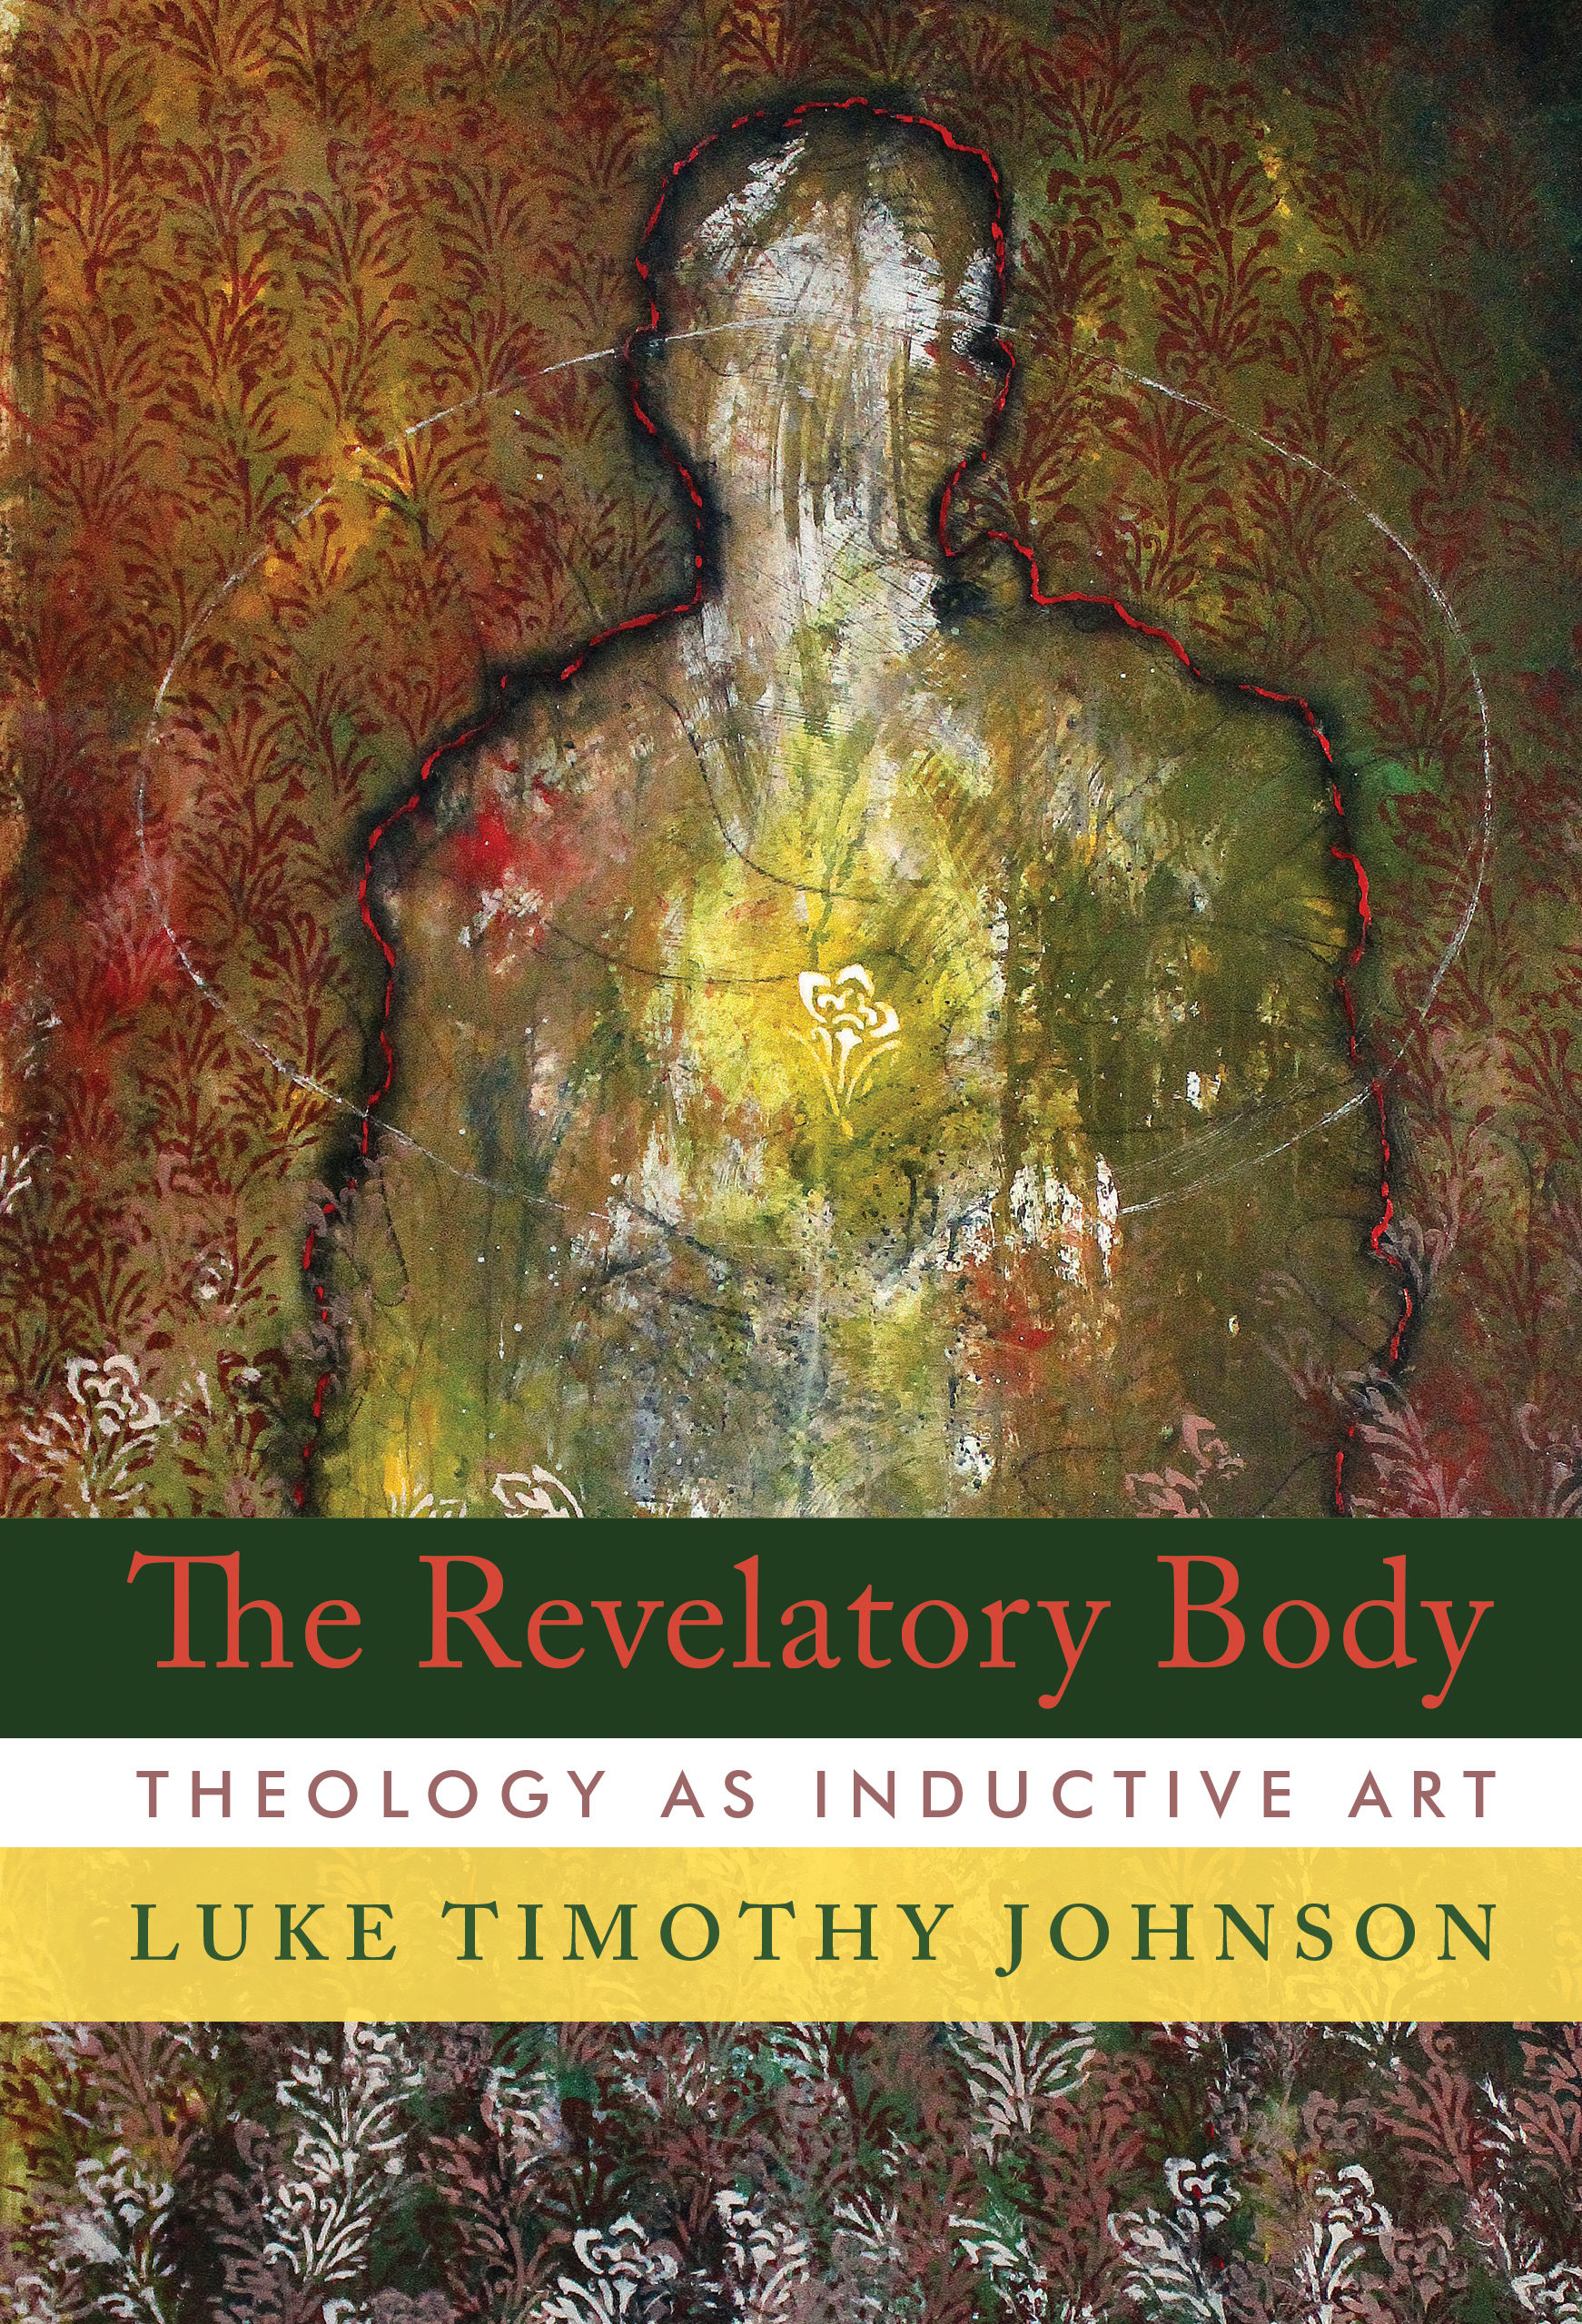 Review of The Revelatory Body: Theology as Inductive Art by Luke Timothy Johnson